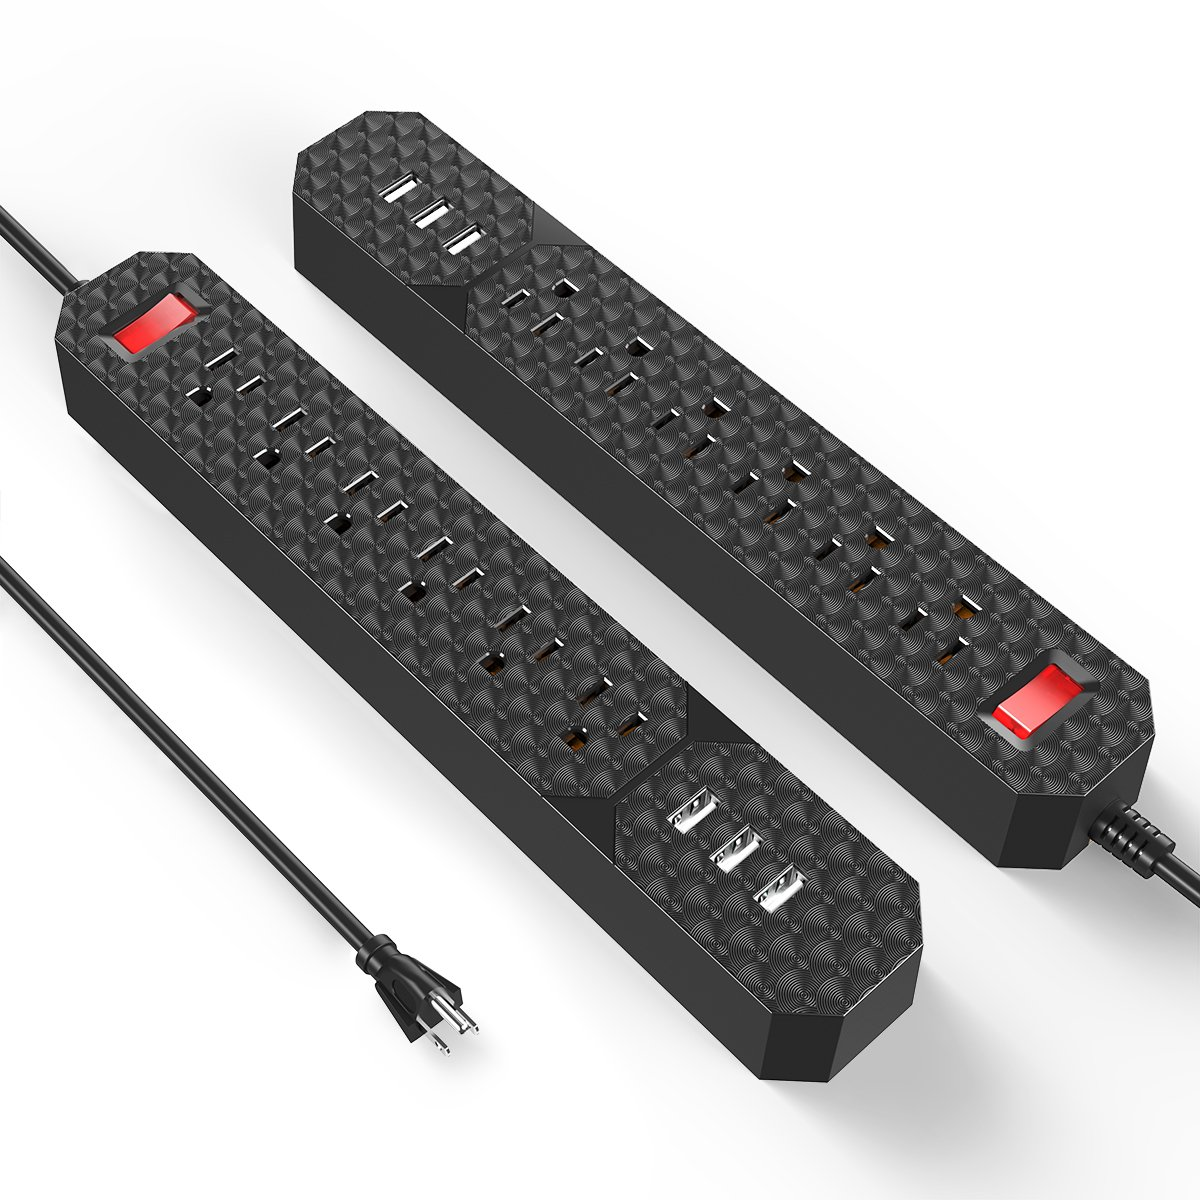 Poweradd 6-Outlet Surge Protector Power Strip with 3-Port USB Charger Wall Mount Design, 6 foot Extension Cord - 2 Pack